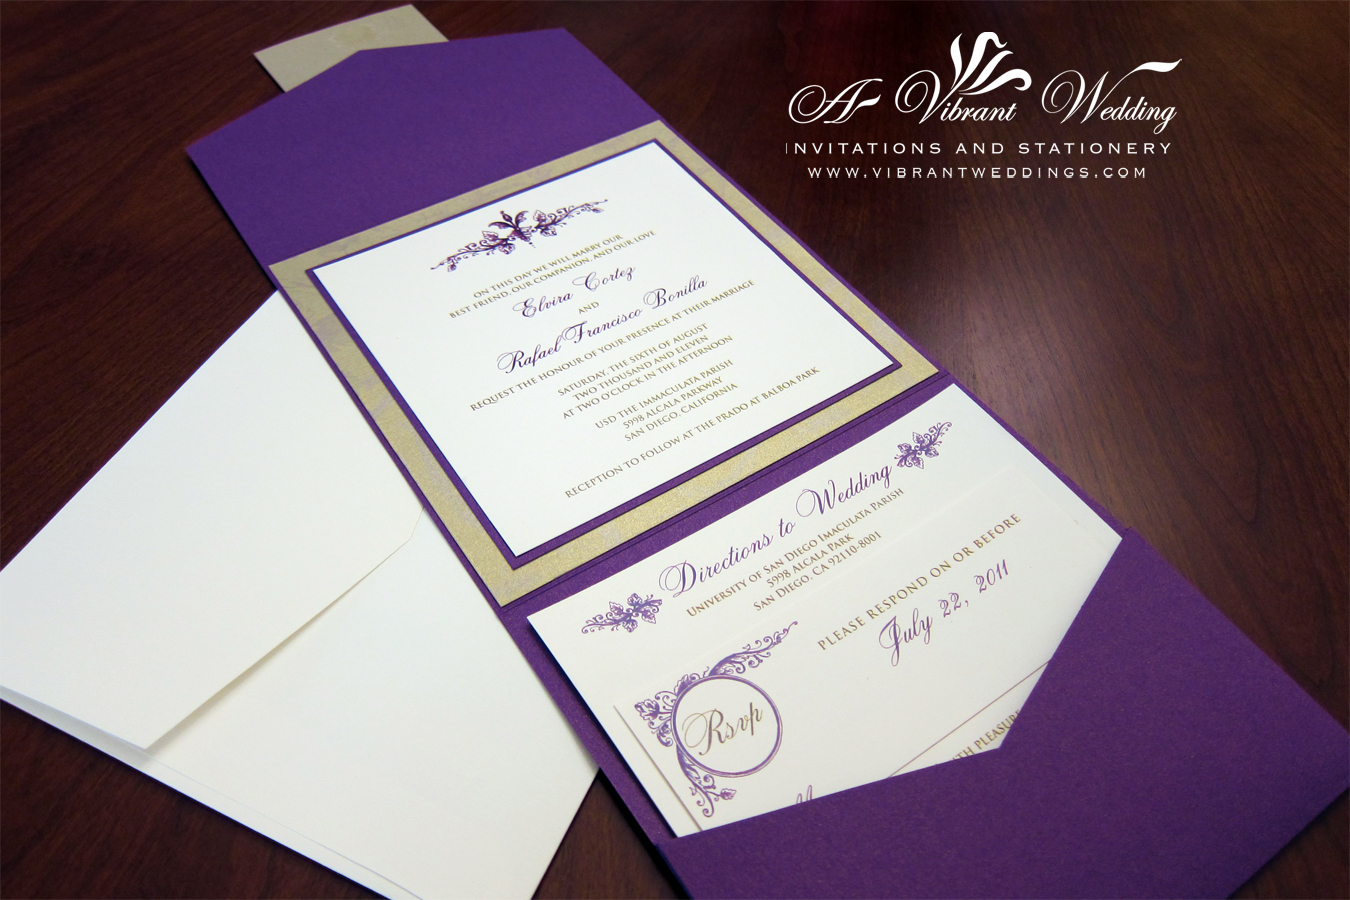 purple and gold wedding invitation purple and gold wedding Purple and Gold Wedding Invitation Vintage Floral Scroll Design